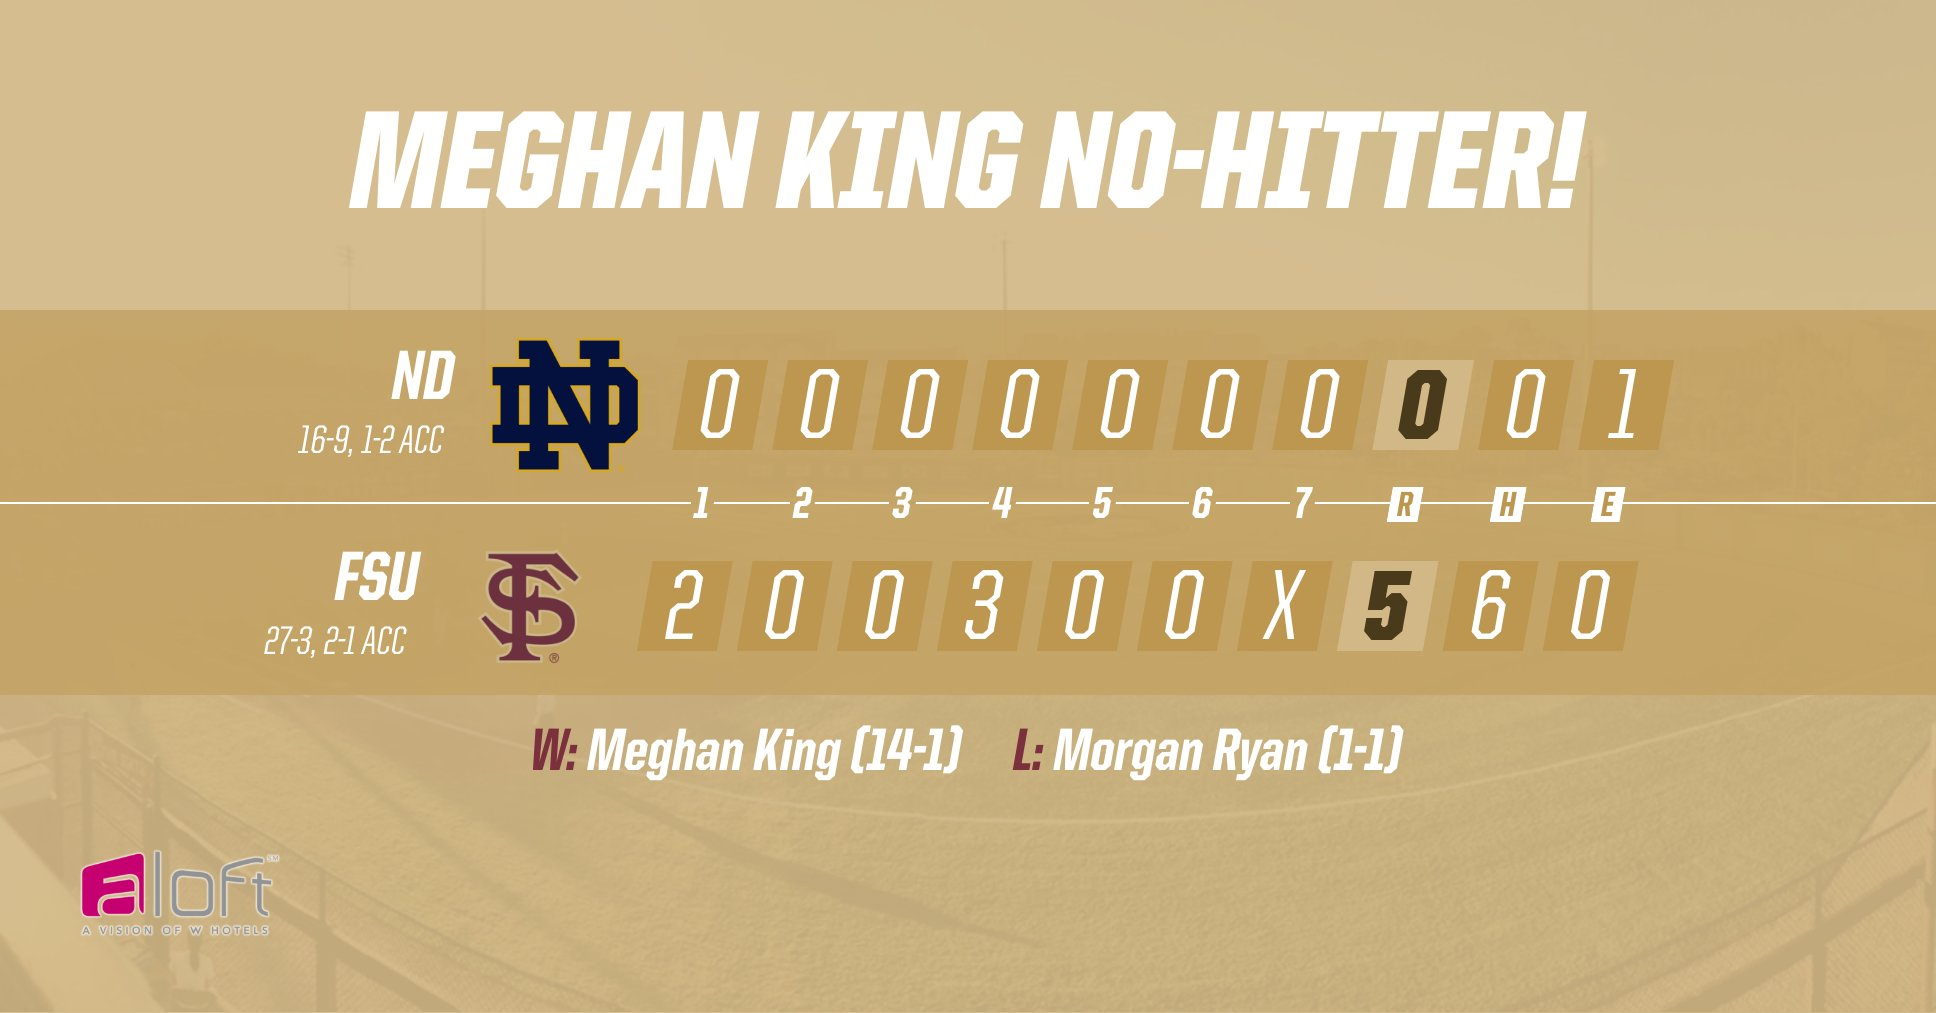 No Luck Or Hits For The Irish As King Records Third No-No